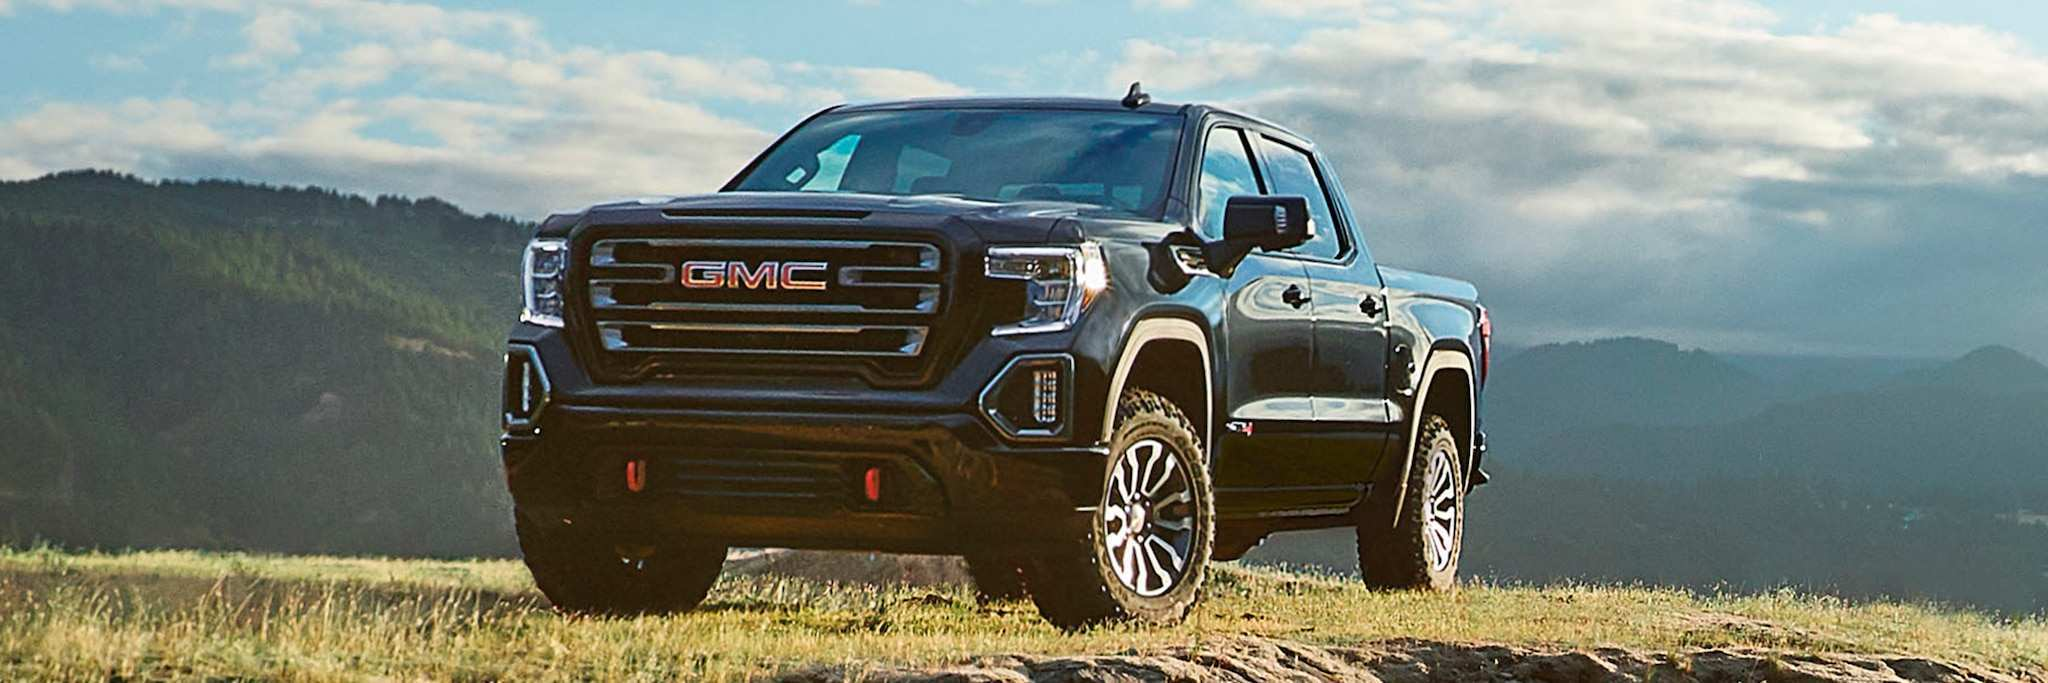 23 Best 2020 Gmc 1500 Price Design And Review